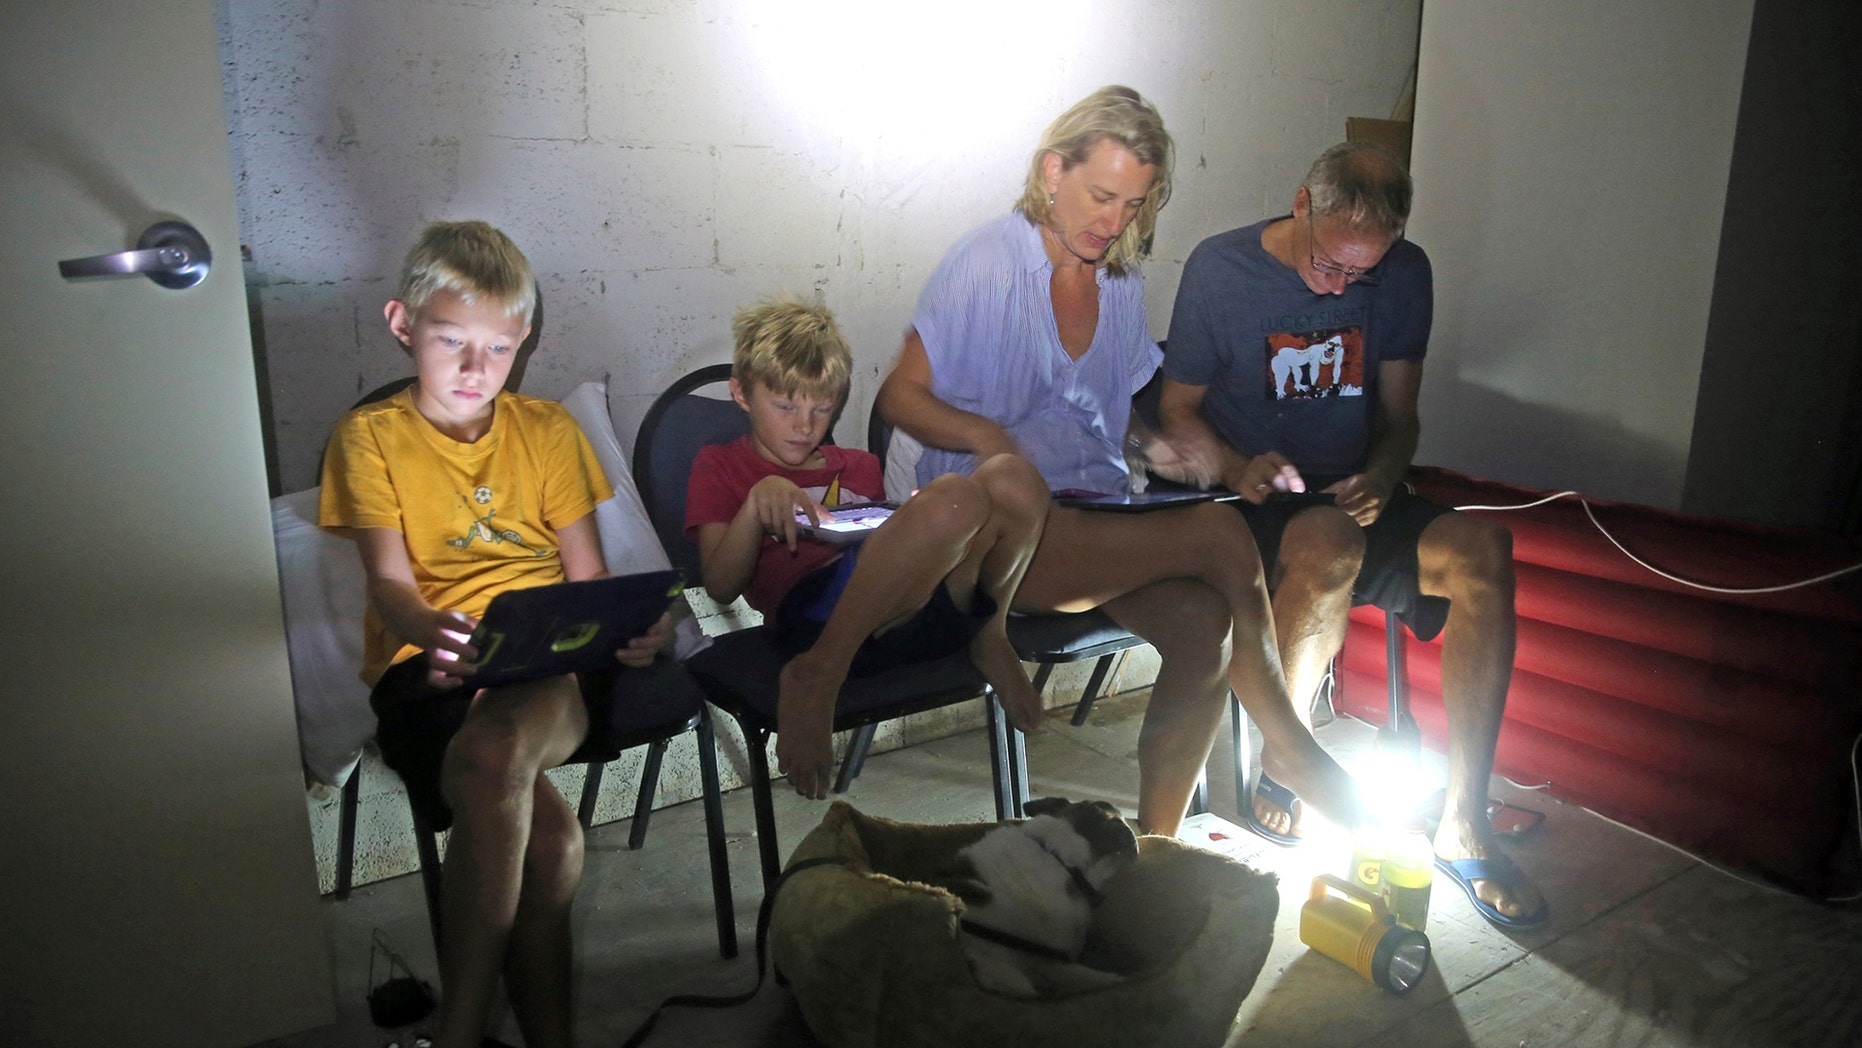 The Blinckman family use their personal devices while sheltering in a stairwell utility closet as Hurricane Irma goes over Key West, Fla., Sunday, Sept. 10, 2017. Hurricane Irma made landfall near Cudjoe Key as a Category 4 hurricane. (Charles Trainor Jr/The Miami Herald via AP)